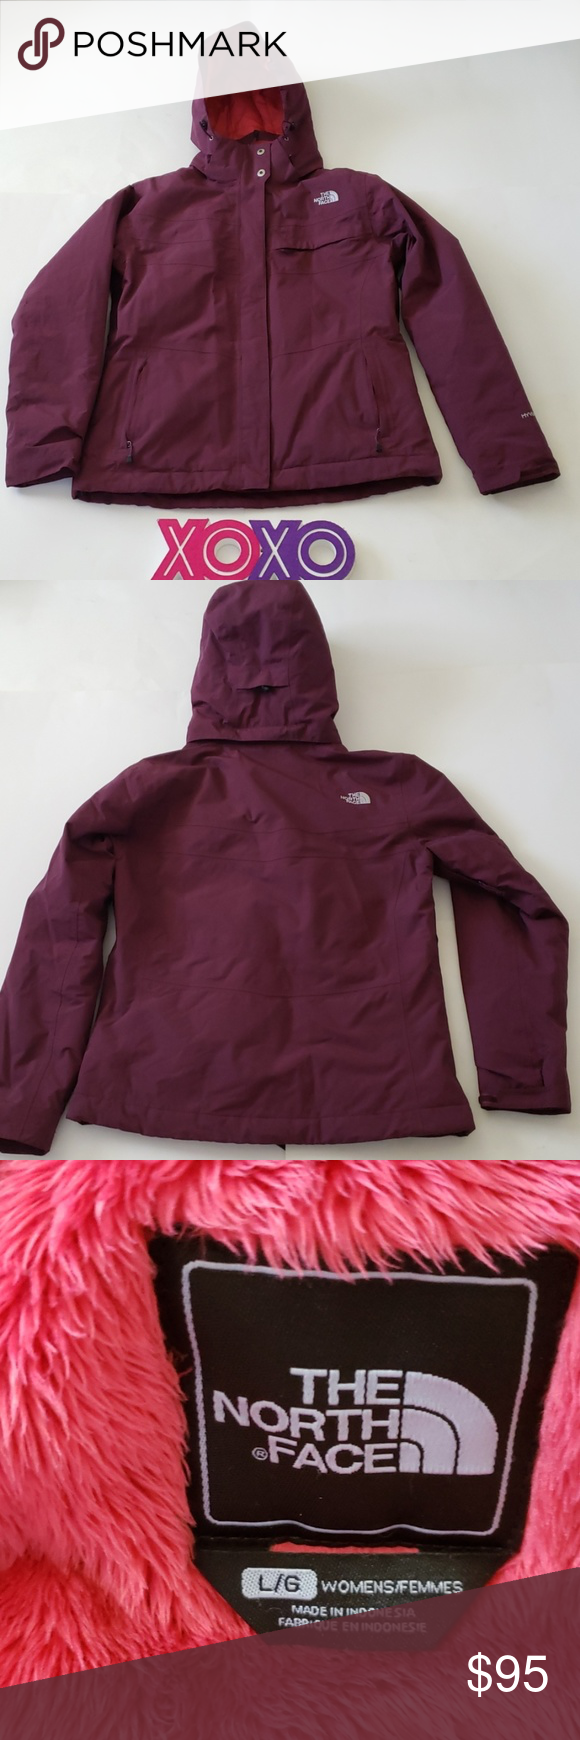 The North Face Hyvent Burgundy Winter Jacket Winter Jackets North Face Hyvent The North Face [ 1740 x 580 Pixel ]